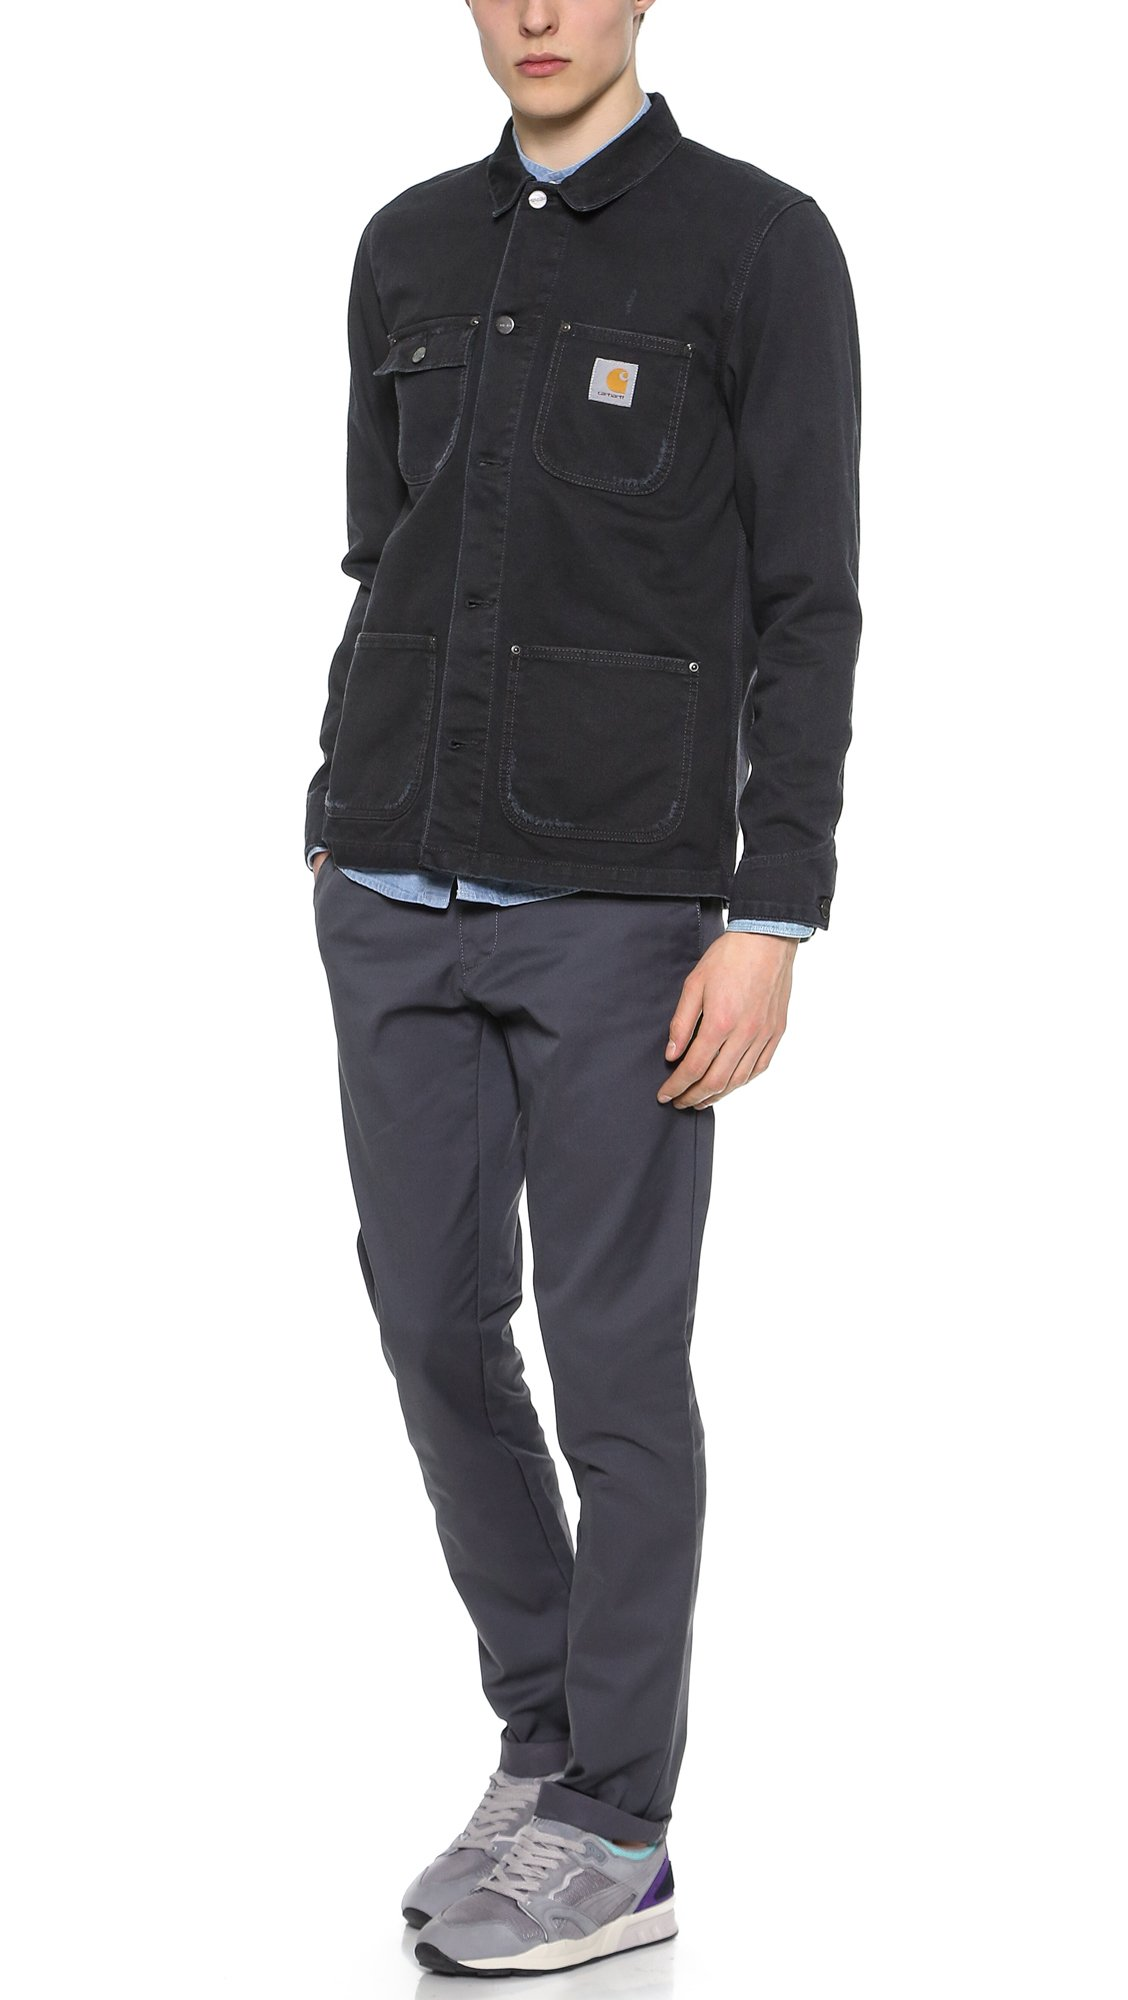 Carhartt chester jacket black